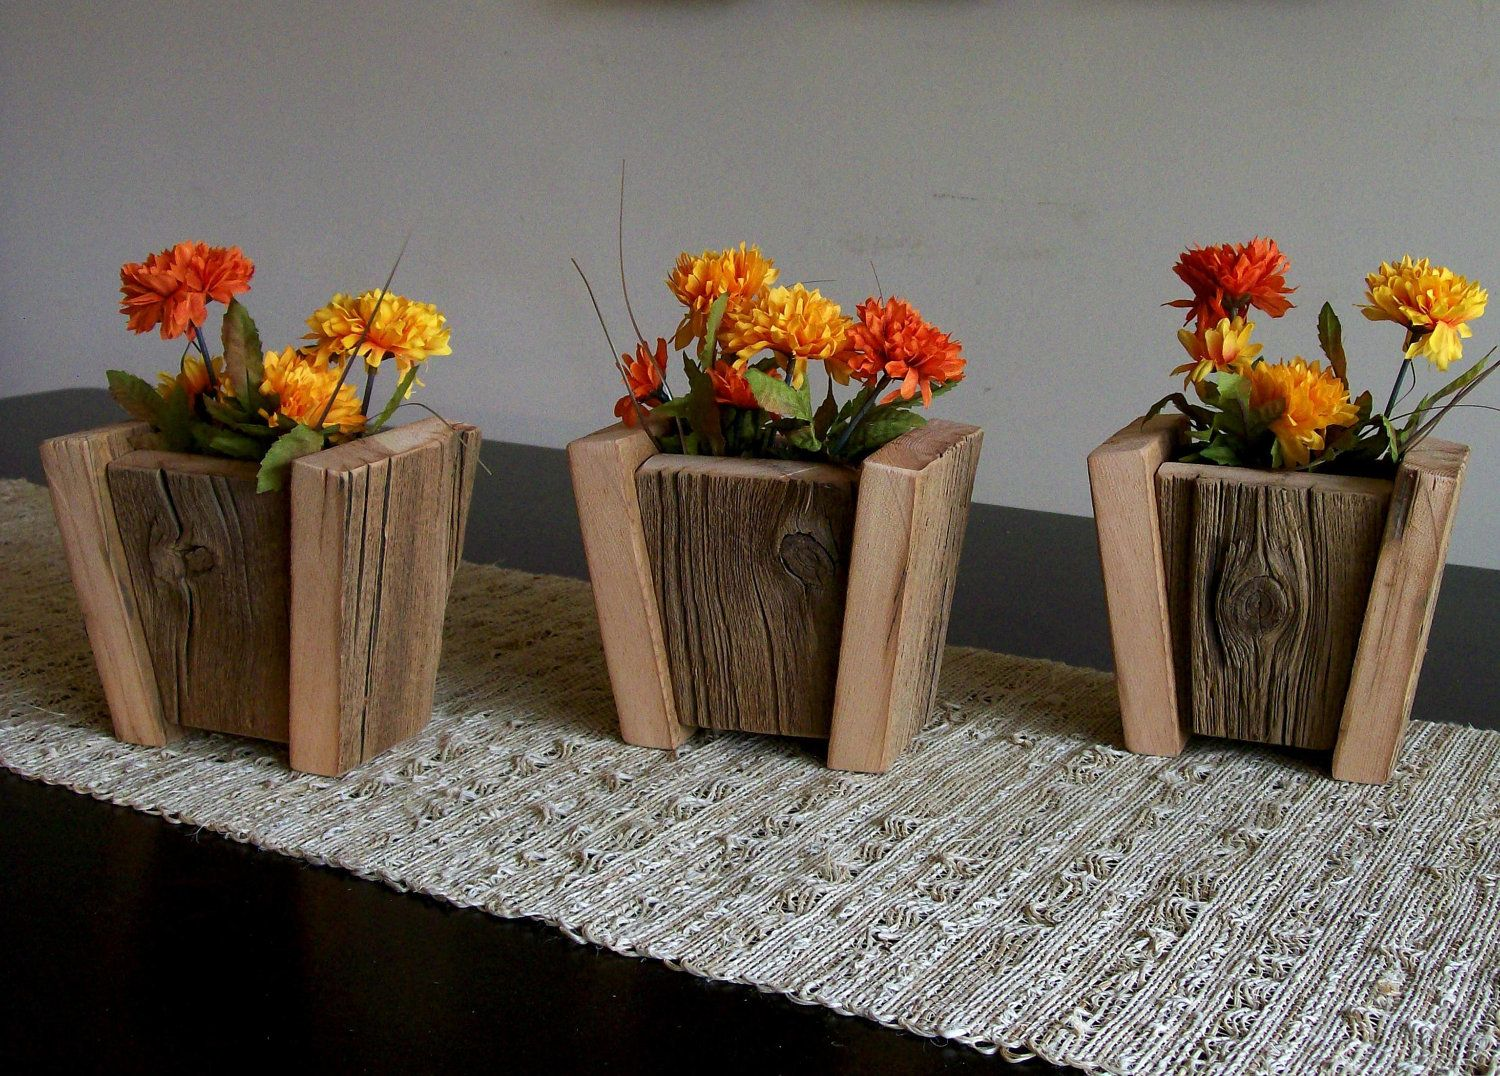 Pin By Jerry Atkinson On Reclaimed Pallets Barn Wood Crafts Barn Wood Projects Wooden Plant Pots